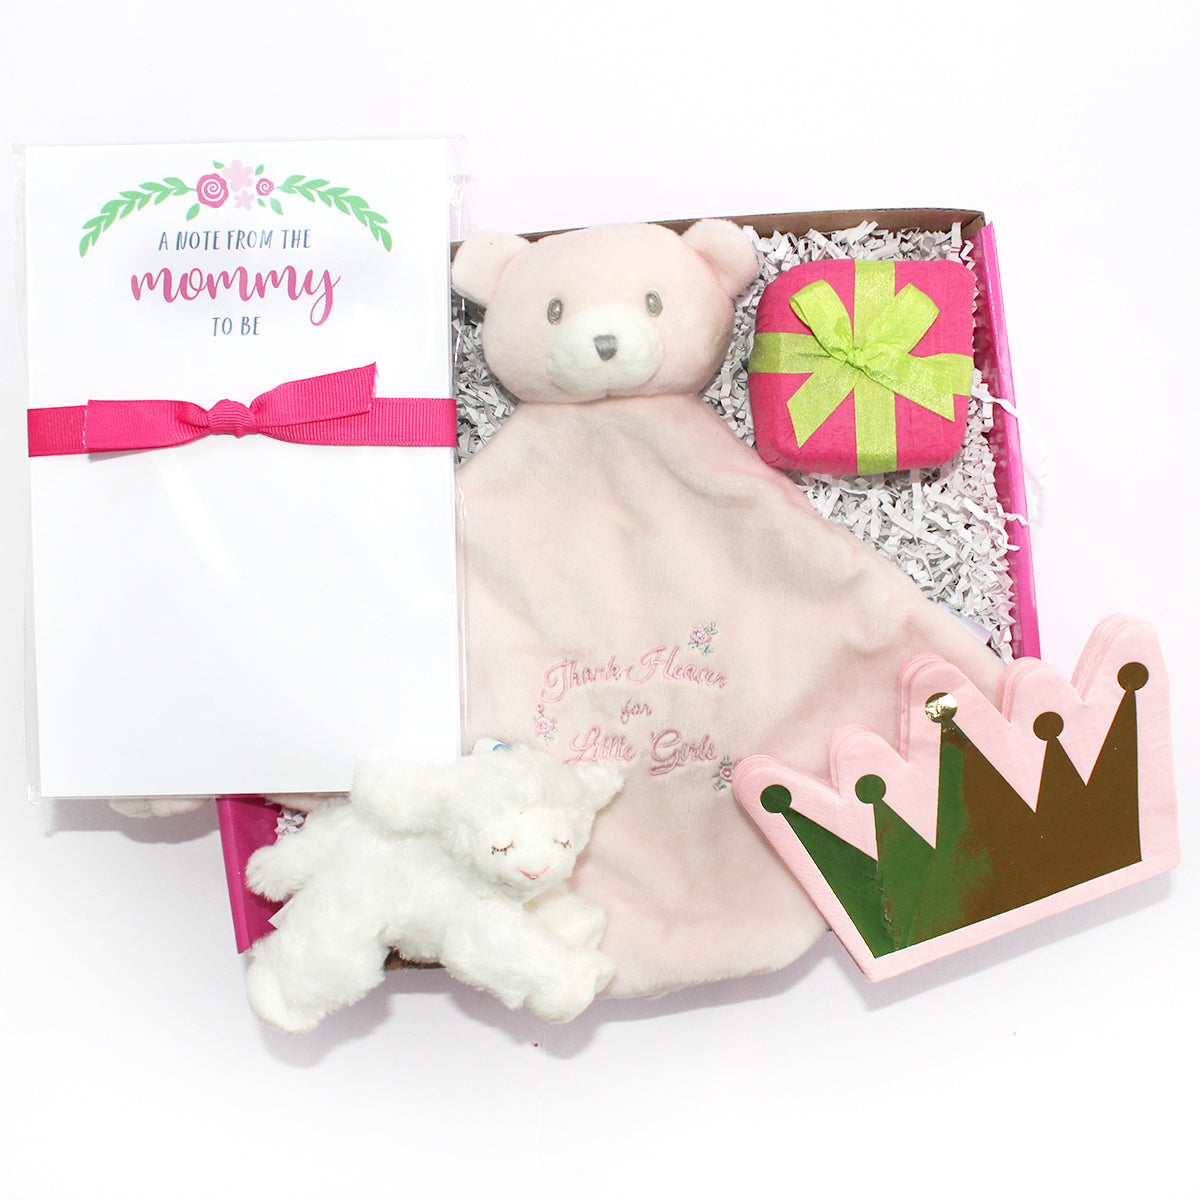 the perfect box for the new mommy. prepares her for the arrival of her new baby girl with princess crown napkins, pink lovey, soon to be mommy notepad, surprise, winky lamb rattle